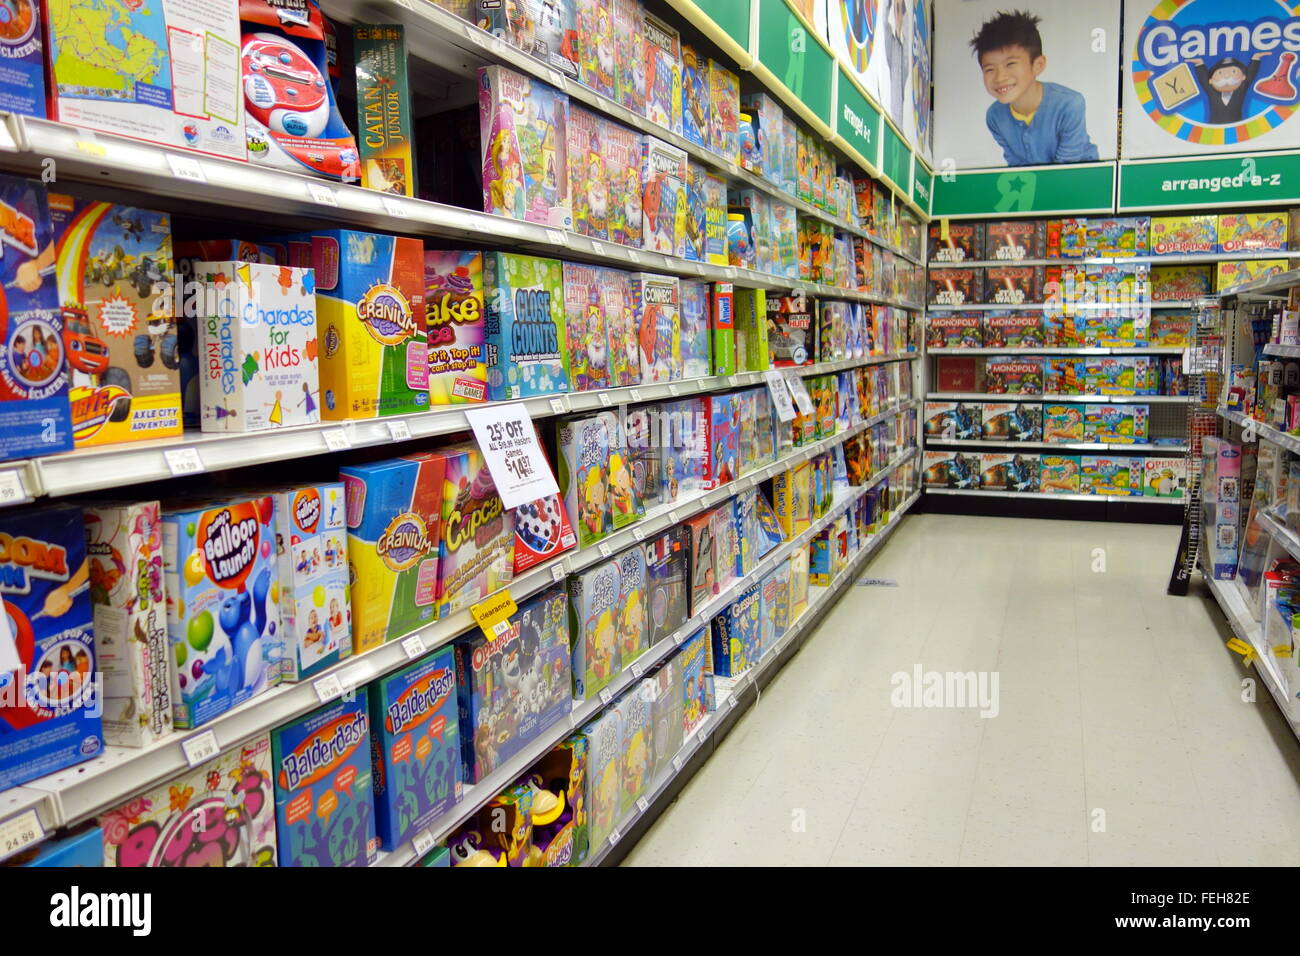 Toys R Us Games : Children board games at a toys r us store in toronto